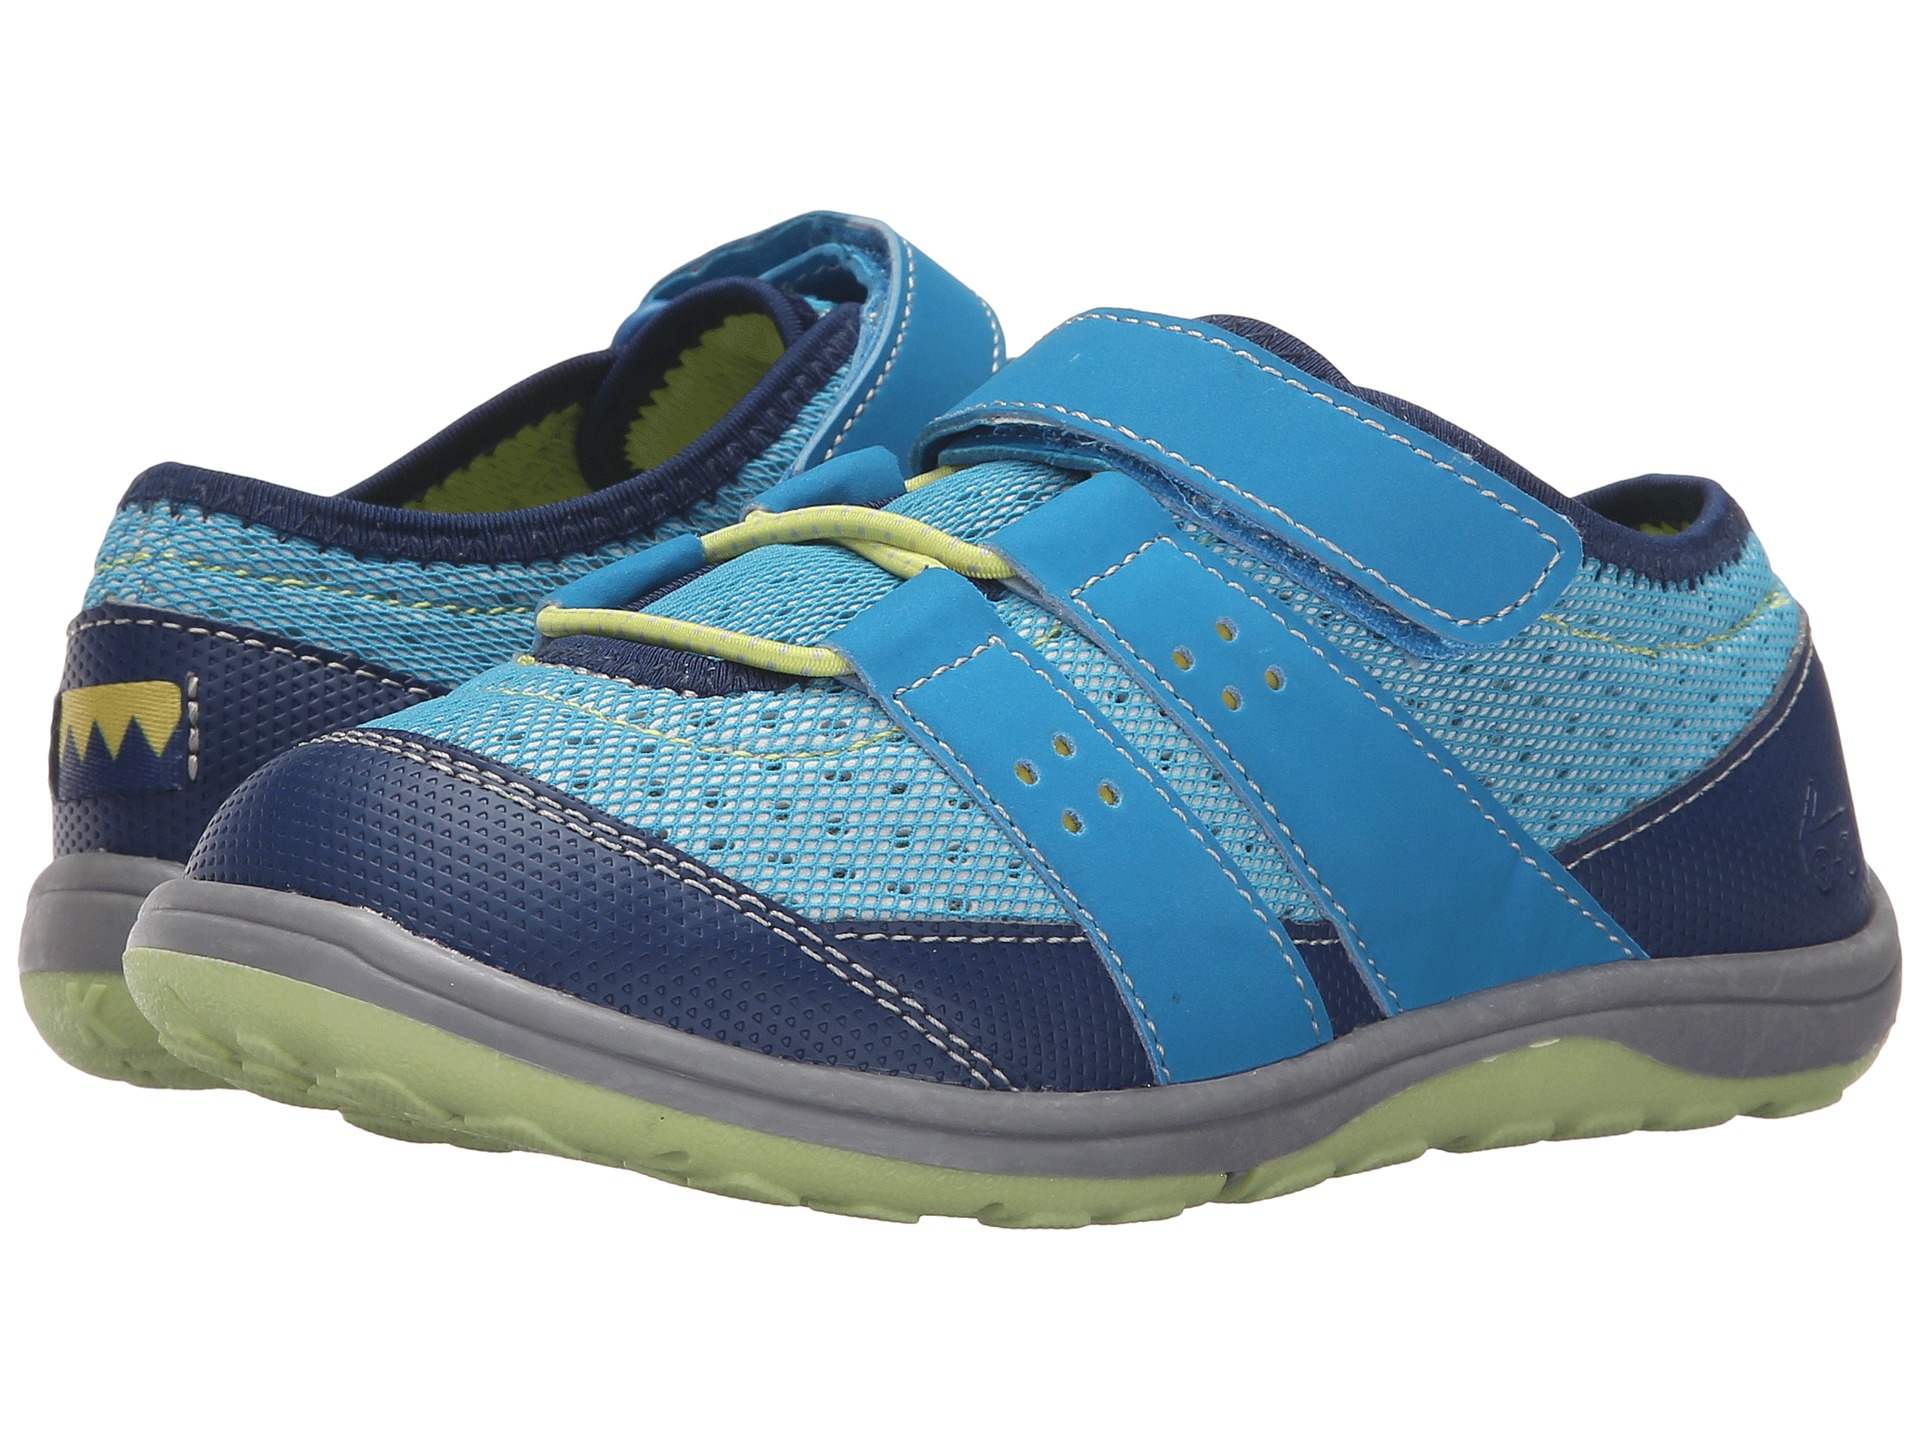 Free shipping BOTH ways on See Kai Run Kids, Sneakers & Athletic Shoes, Girls, from our vast selection of styles. Fast delivery, and 24/7/ real-person service with a .